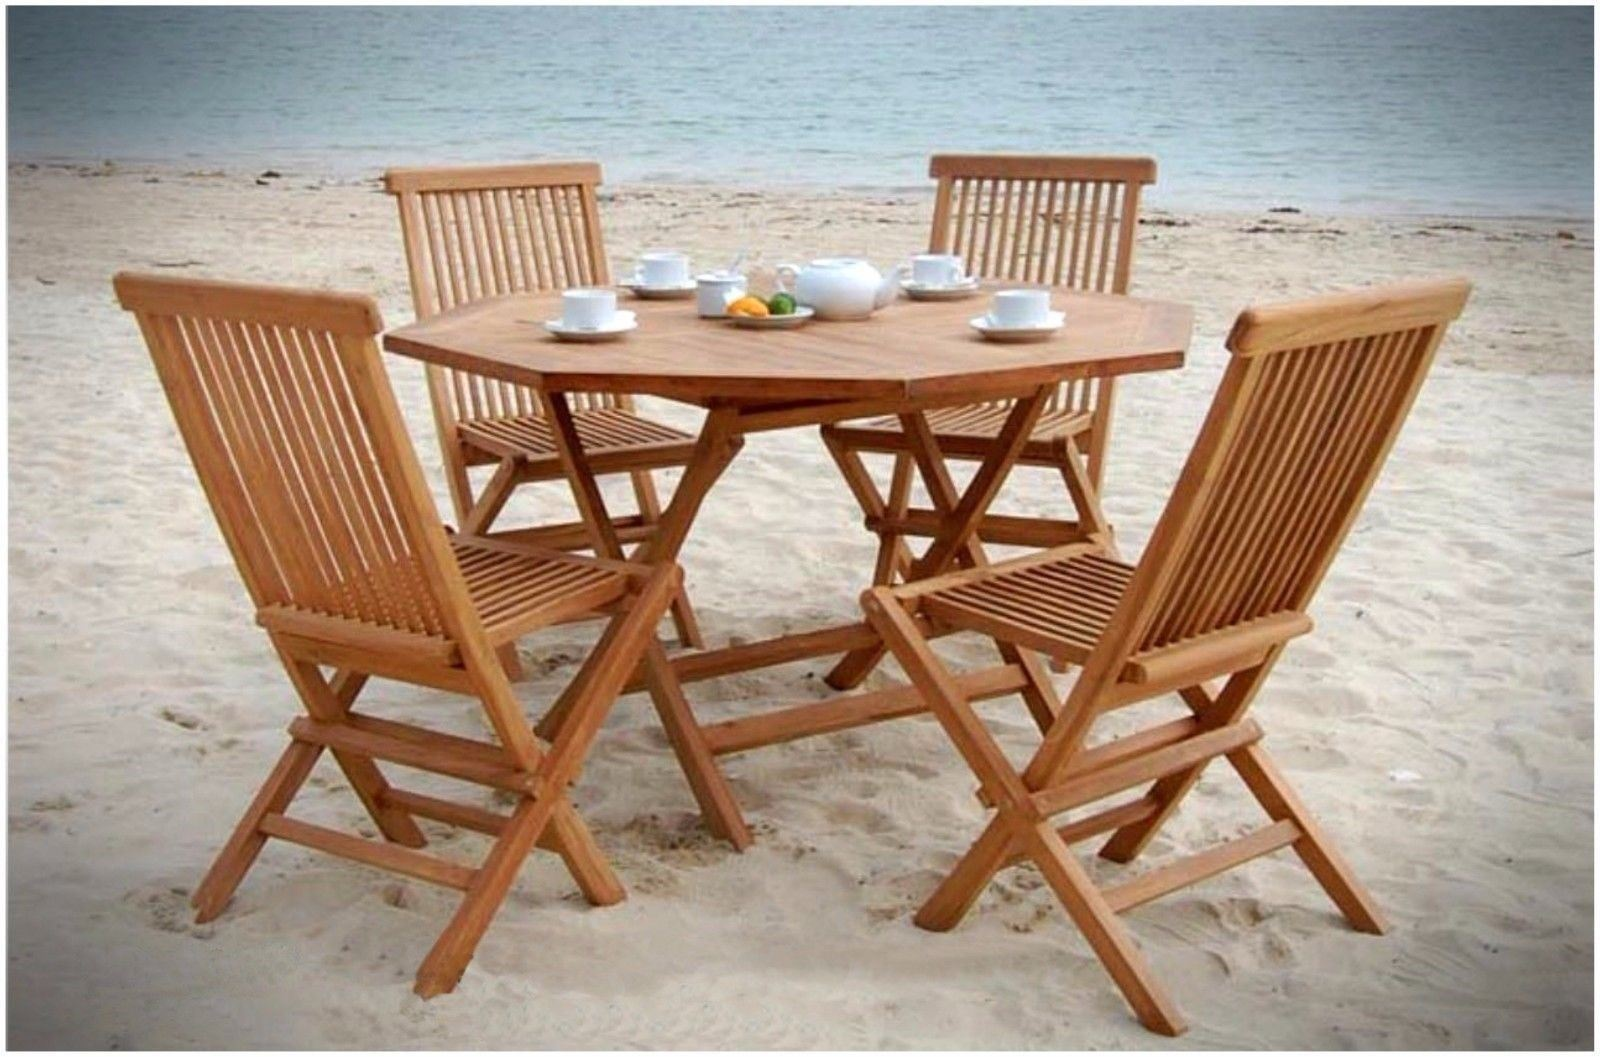 Garden 120cm solid teak wood folding table 4 chairs set wooden patio furniture